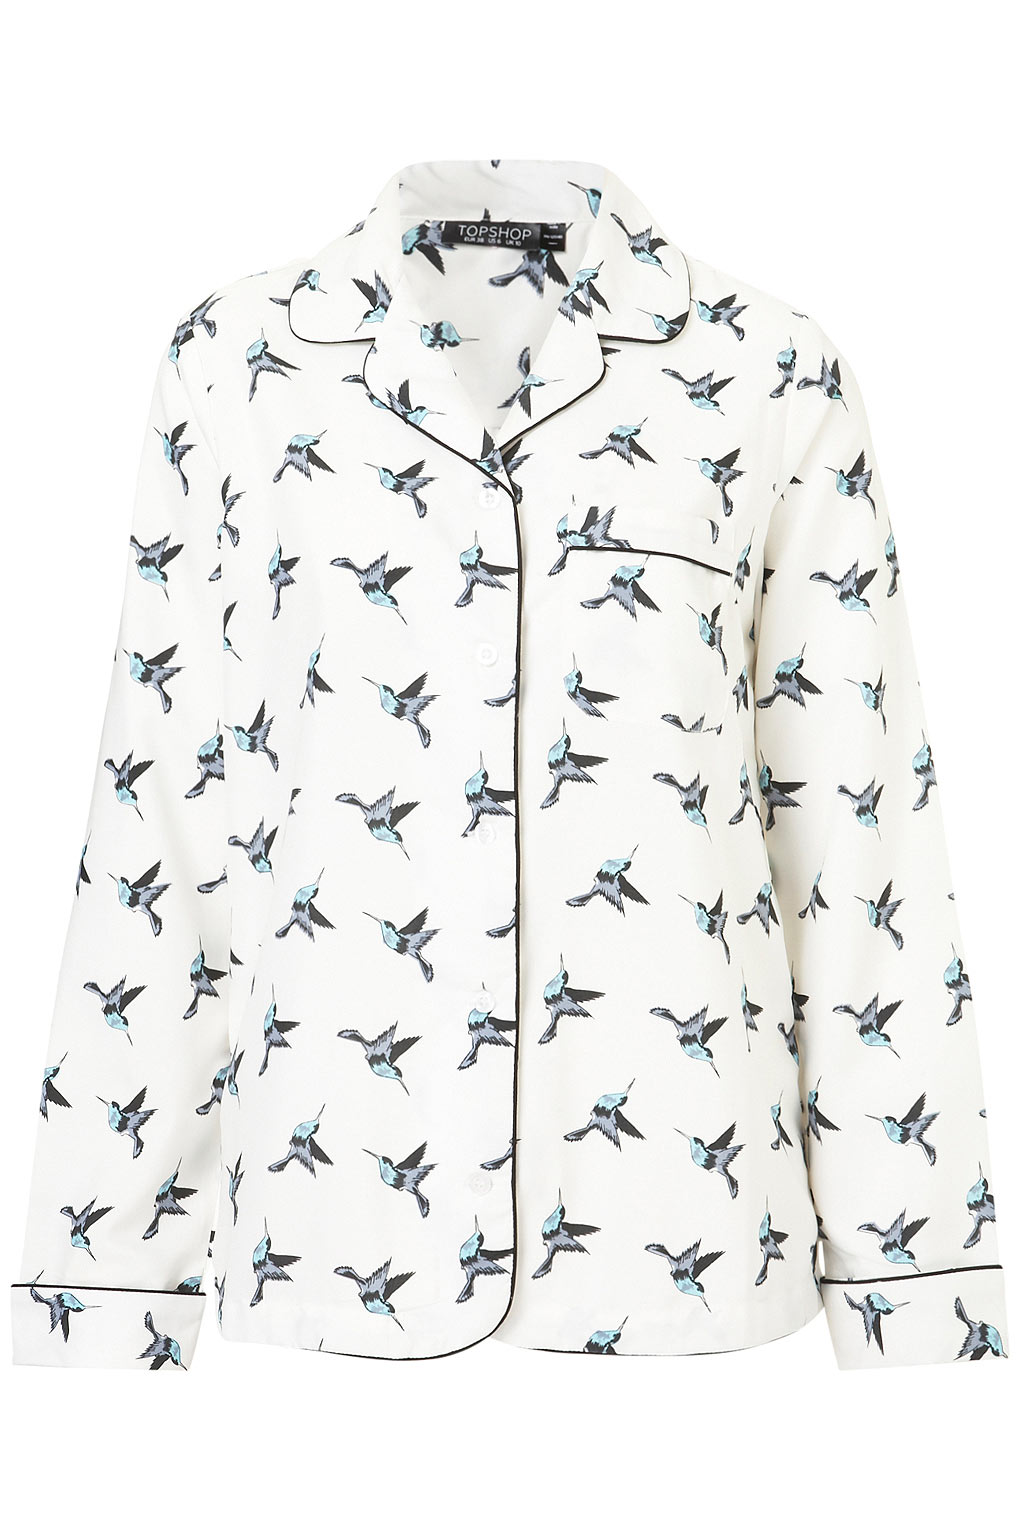 86ad80ad84 Lyst - TOPSHOP Bird Print Pyjama Style Shirt in White